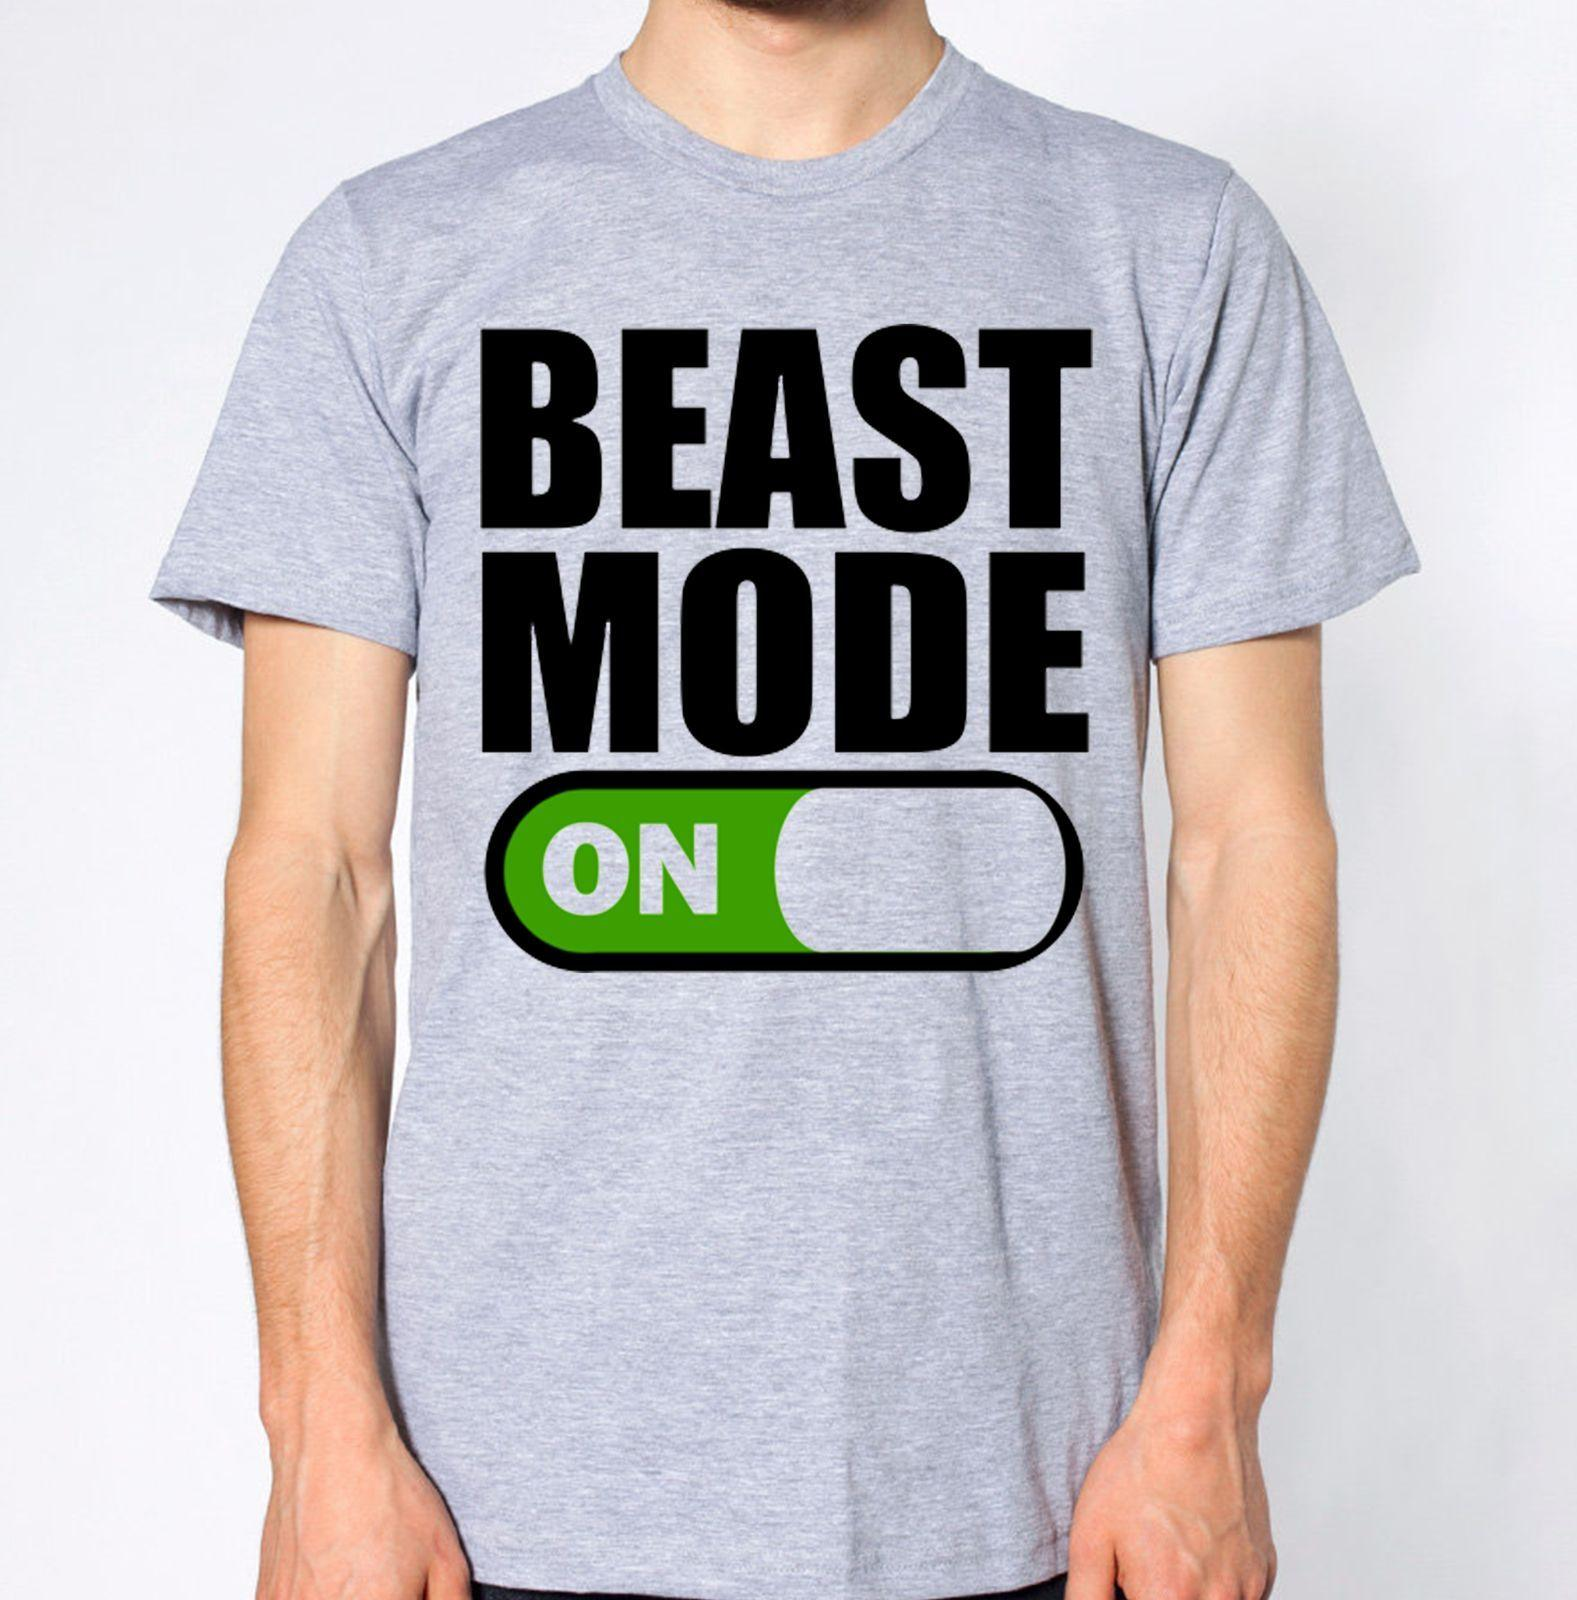 6a774a38 Beast Mode Loading T Shirt Gym Bodybuilding Muscles Workout Hoodie Hip Hop  T Shirt Jacket Croatia Leather Tshirt Buy Tee Shirts Great Tee Shirts From  ...